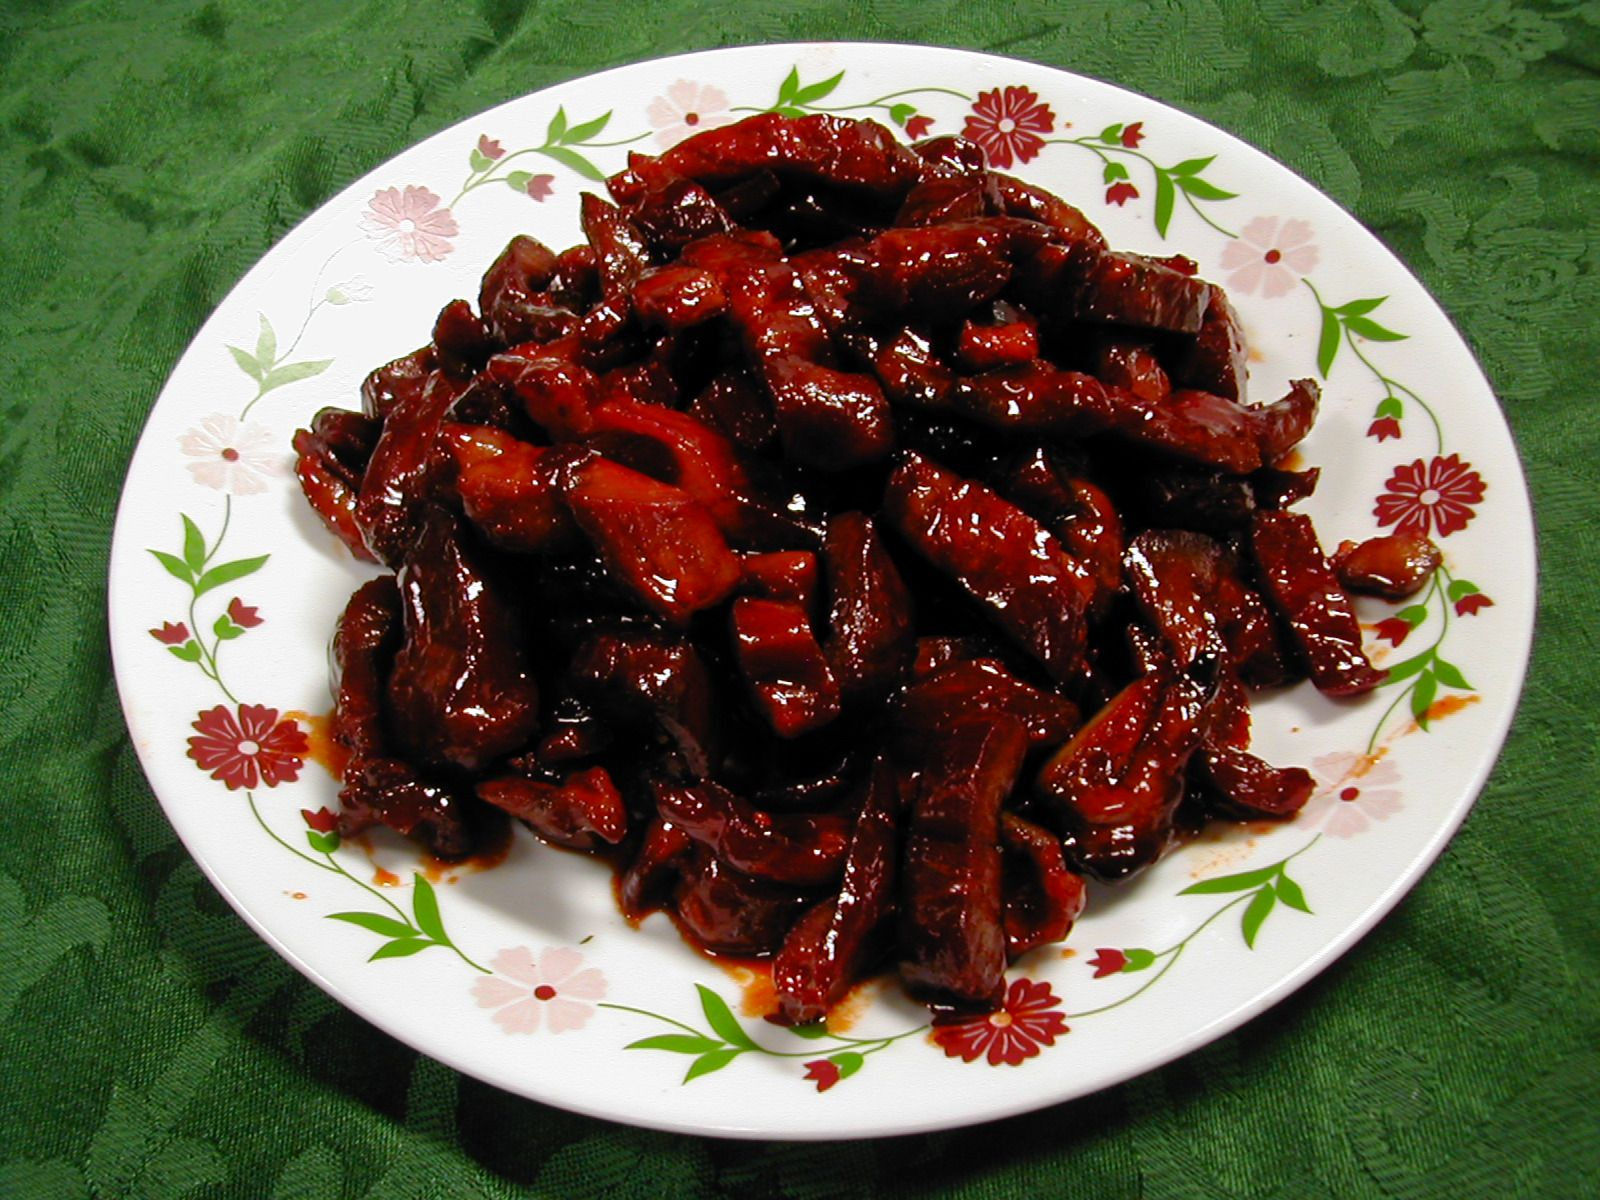 Chinese Boneless Spare Ribs These Are The Greatest Things Ever Boneless Ribs Rib Recipes Boneless Spare Ribs